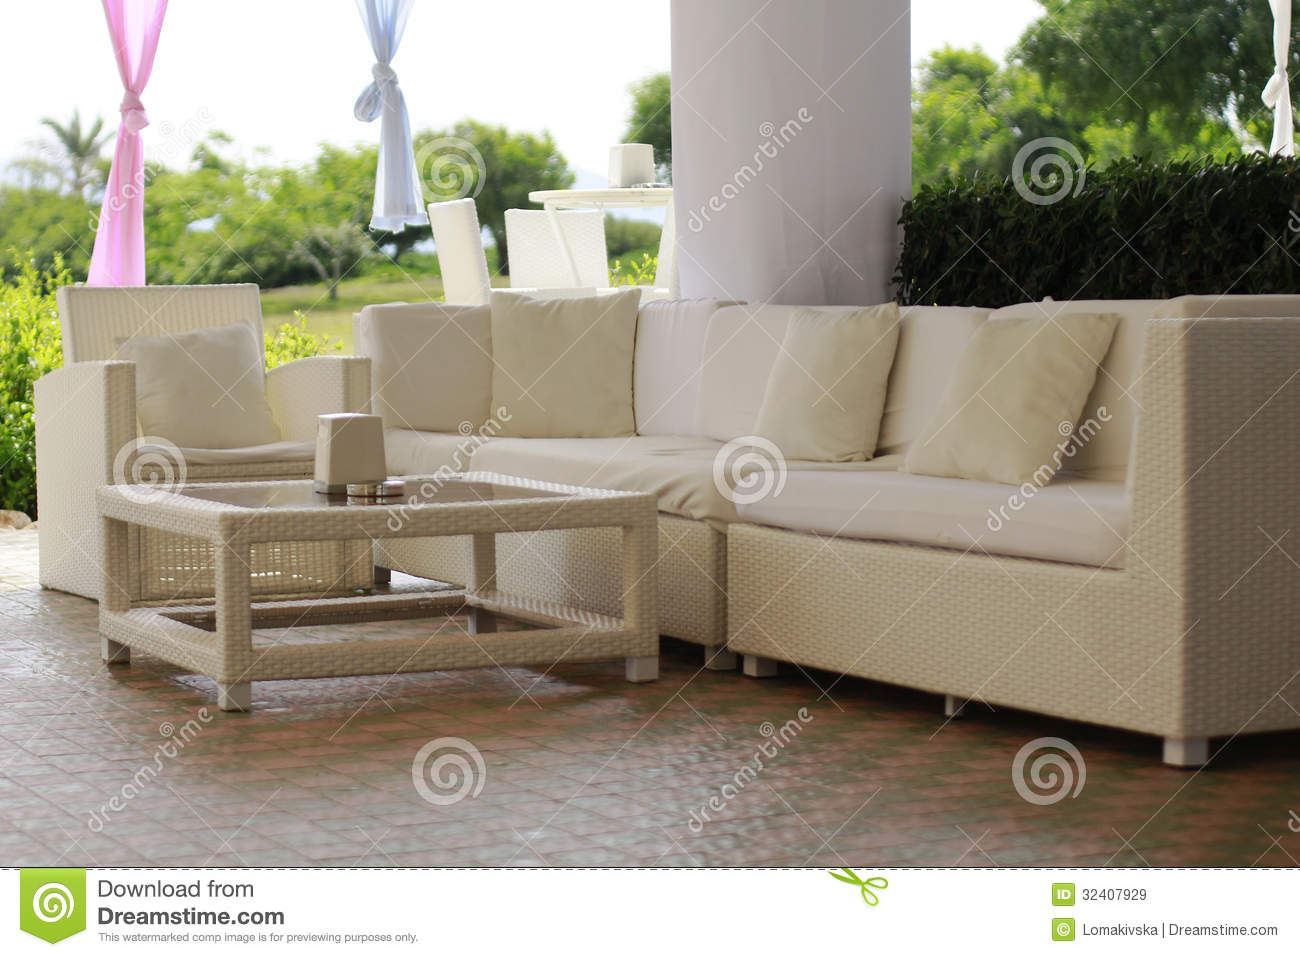 Muebles En Mimbre submited images.